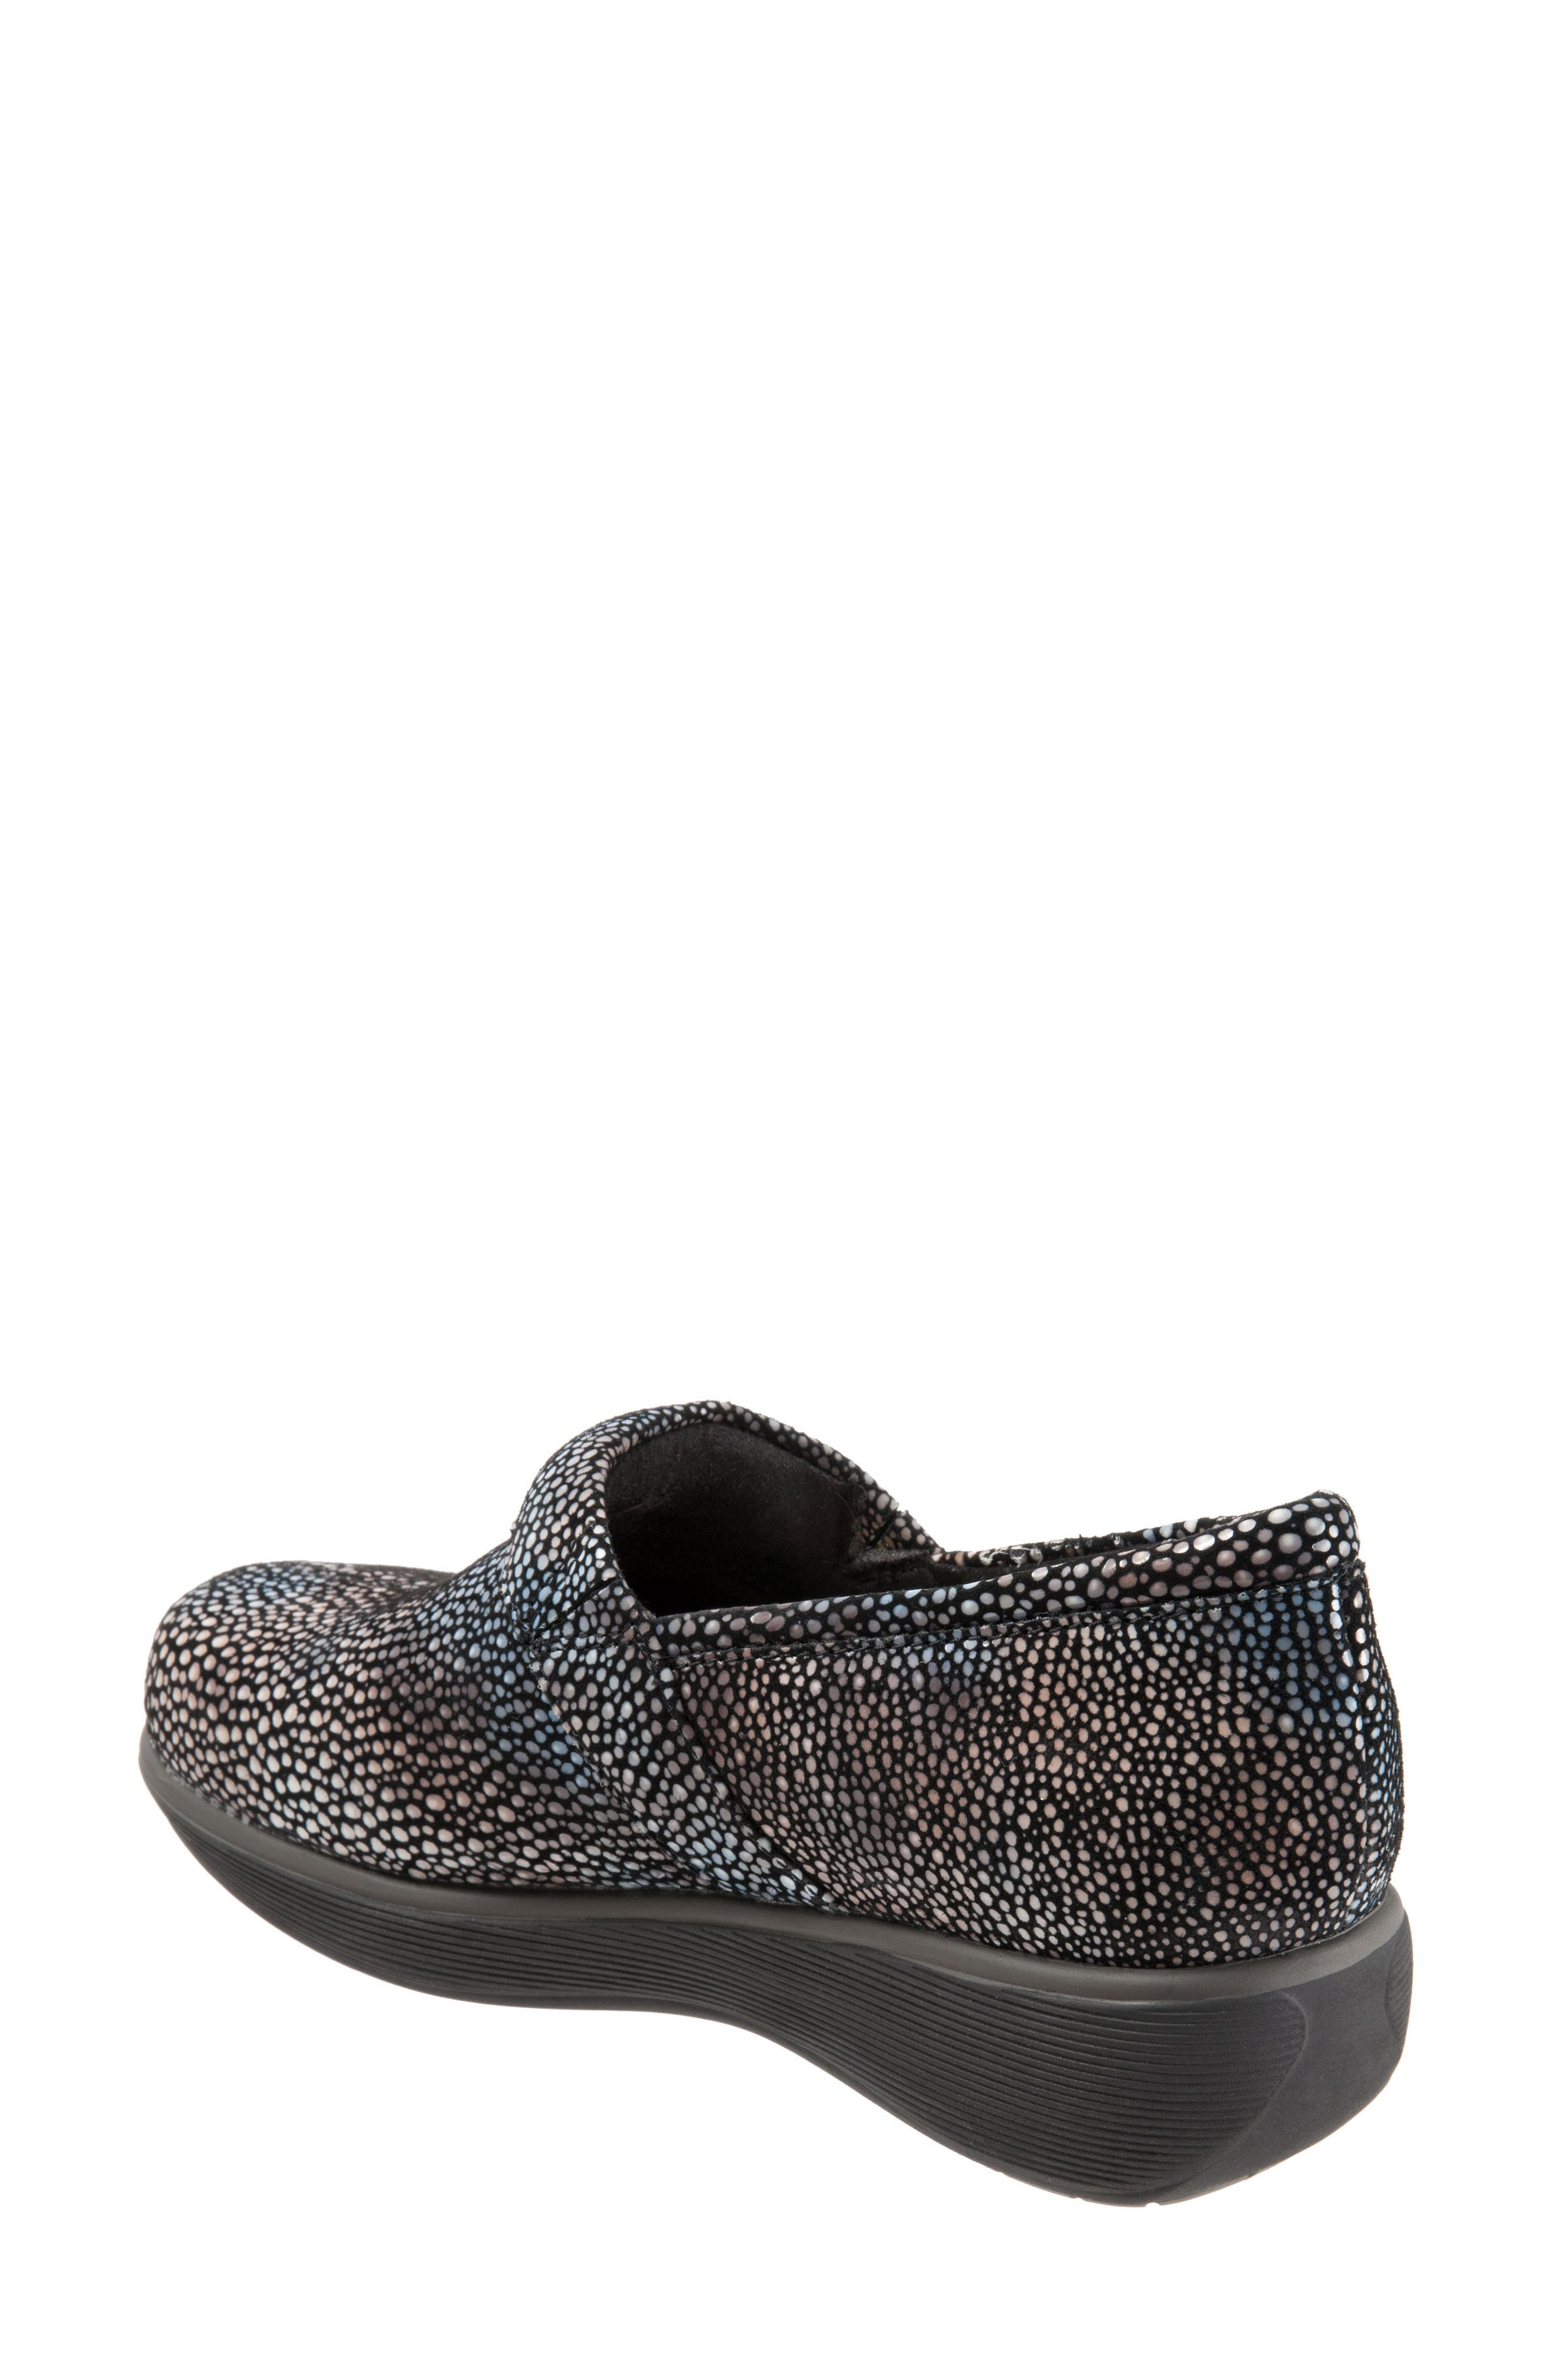 Grey's Anatomy<sup>®</sup> by Softwalk<sup>®</sup> 'Meredith' Leather Clog,                             Alternate thumbnail 2, color,                             Multi Mosaic Leather